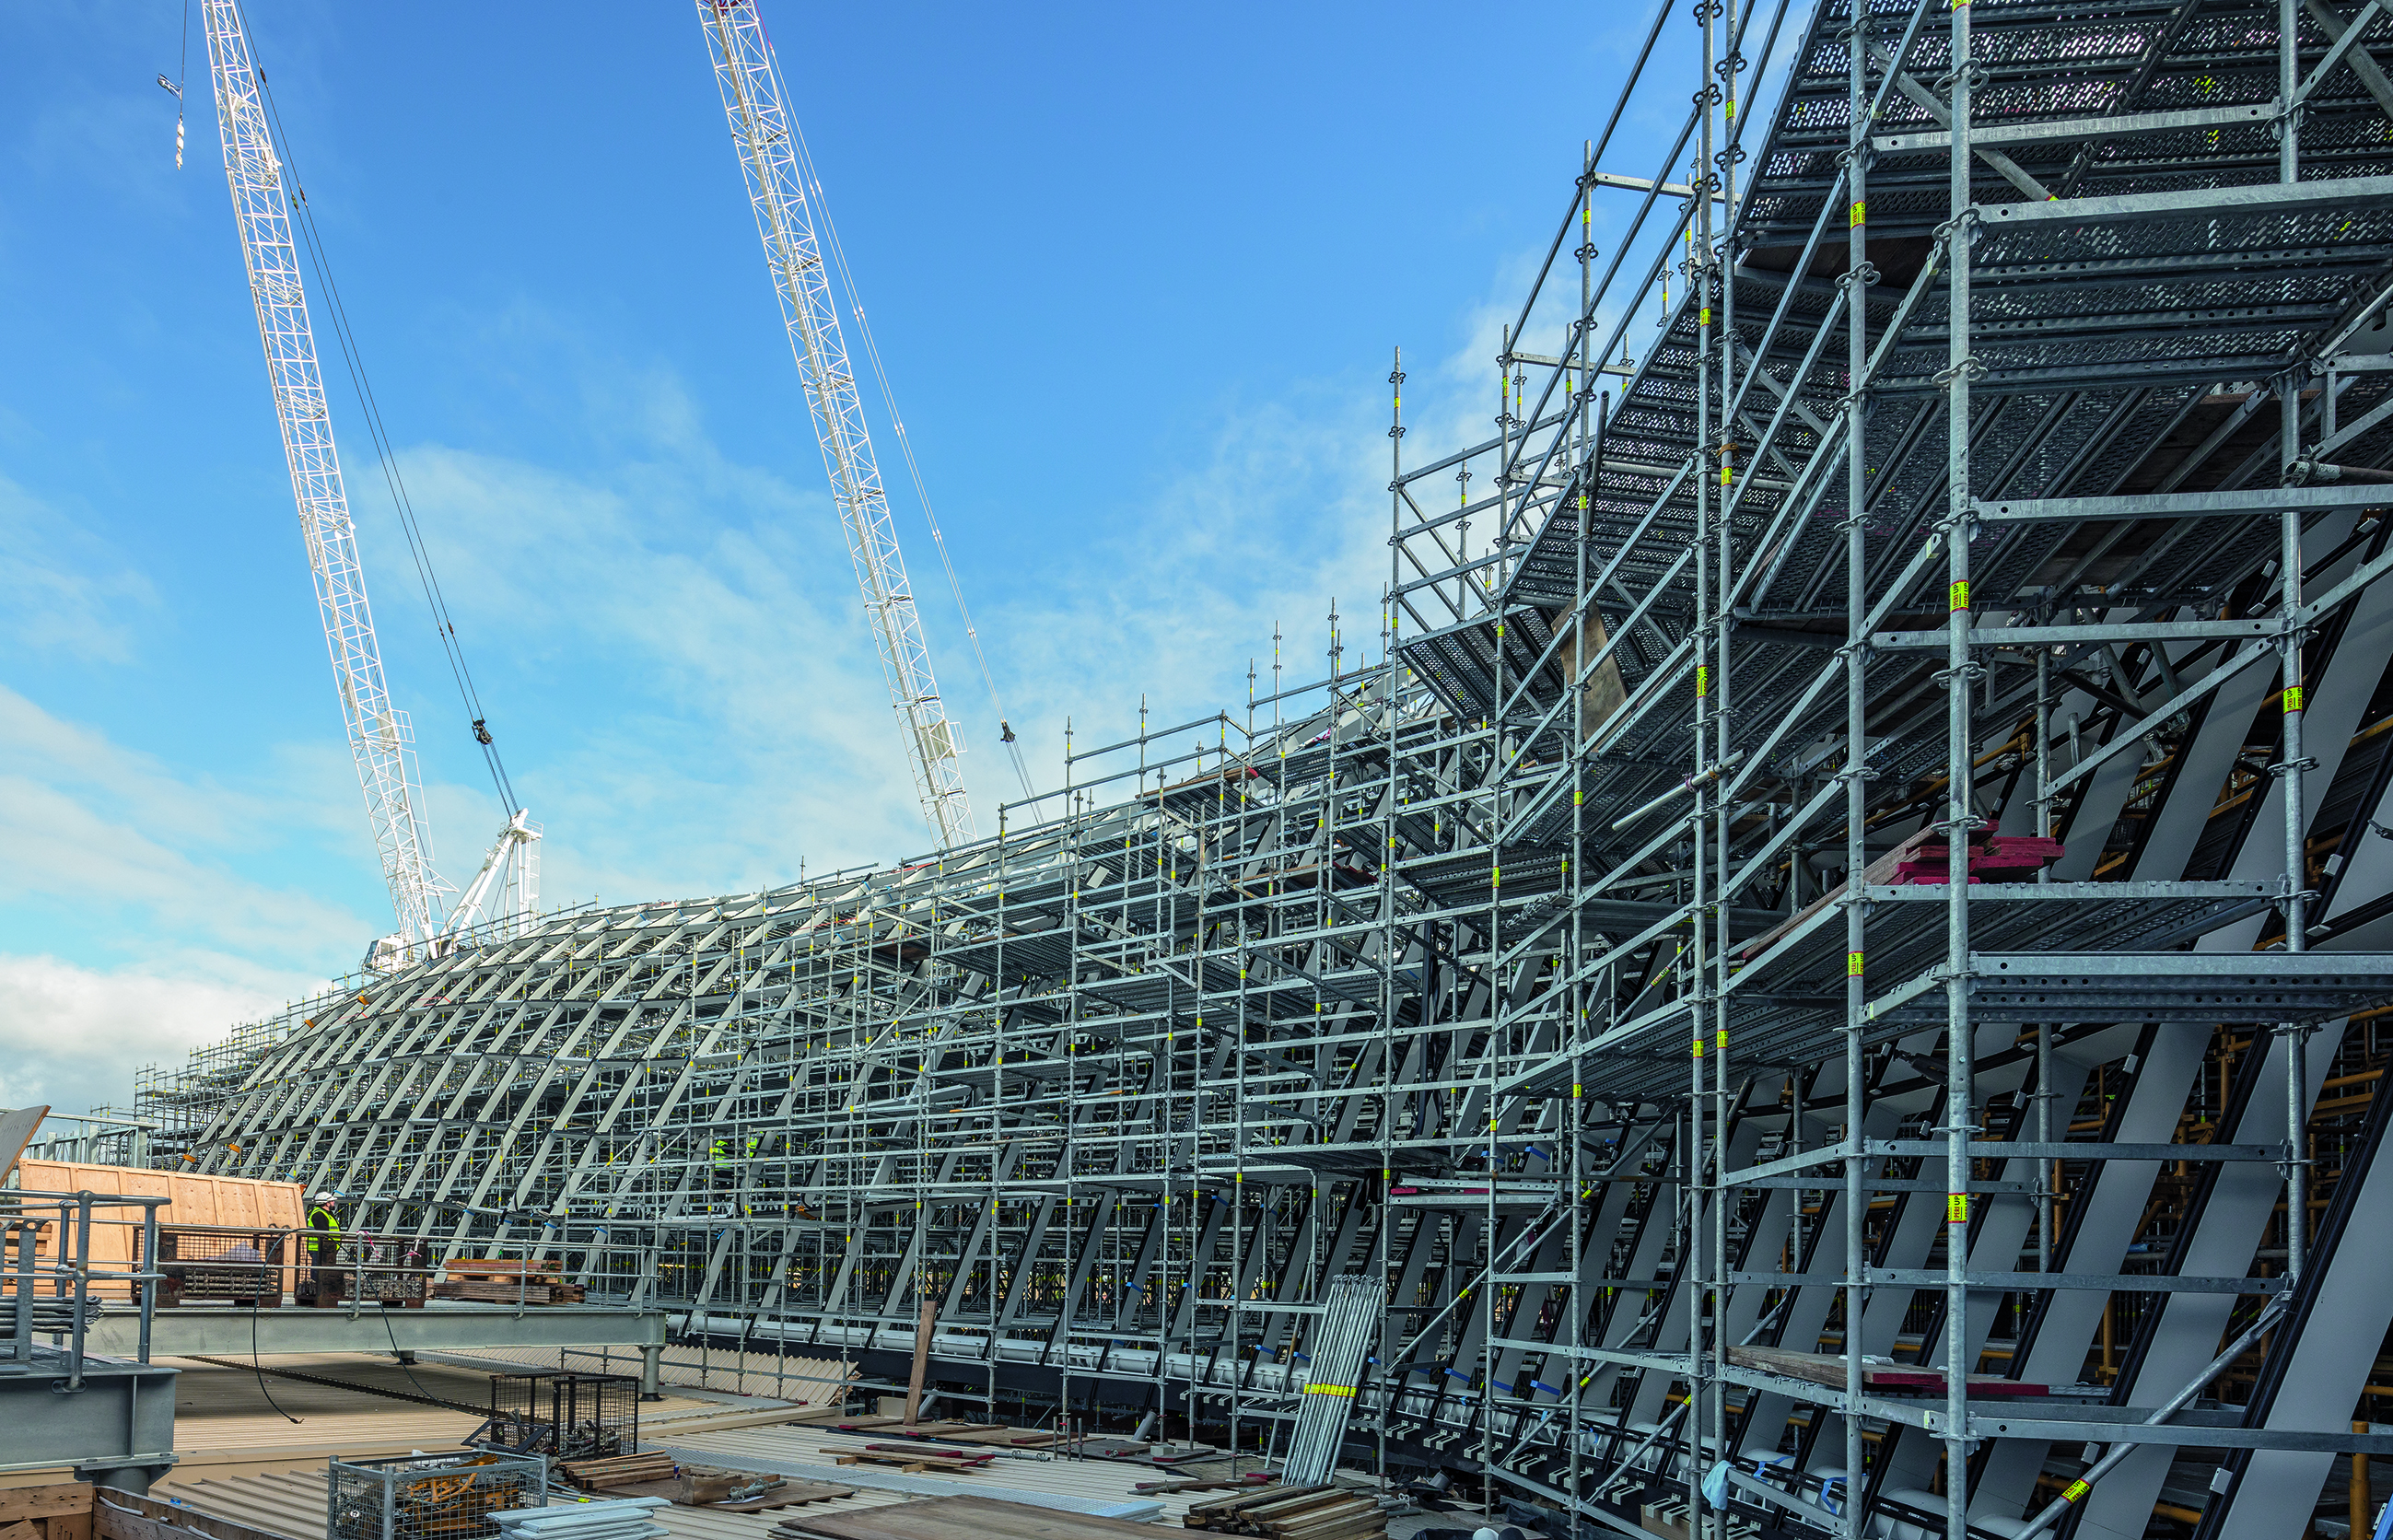 The PERIUP Flex Modular Scaffolding was adapted to suit the complex-shaped glass roof structure: all working areas could be easily and safely reached while every load transfer was optimally planned.